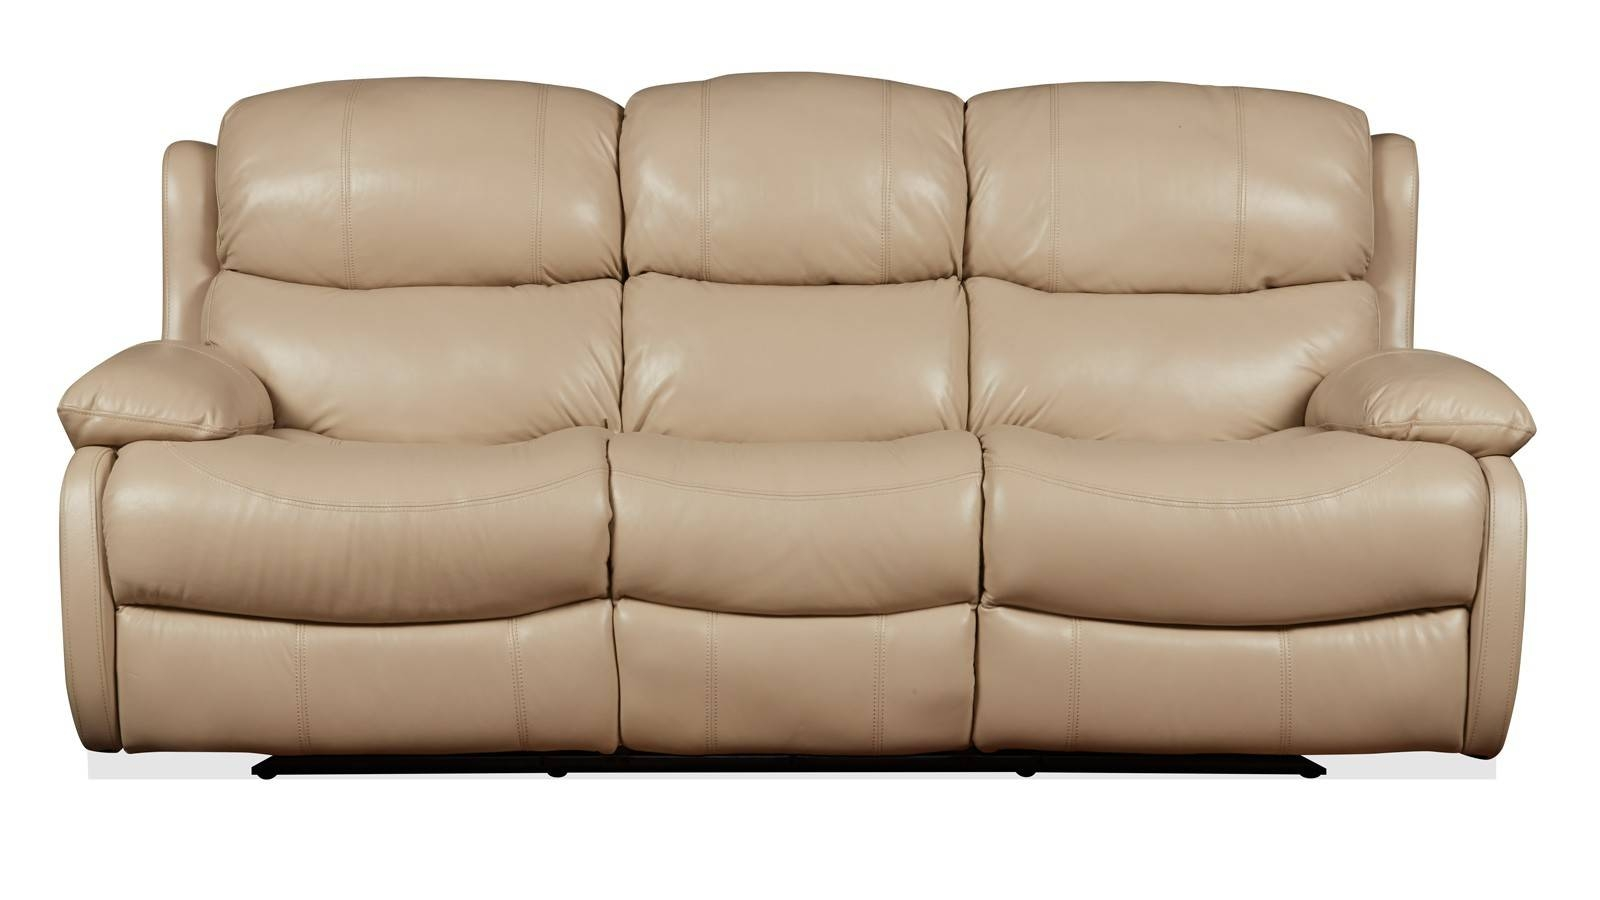 New Waverly Power Reclining Sofa | Gallery Furniture throughout Recliner Sofa Chairs (Image 24 of 30)